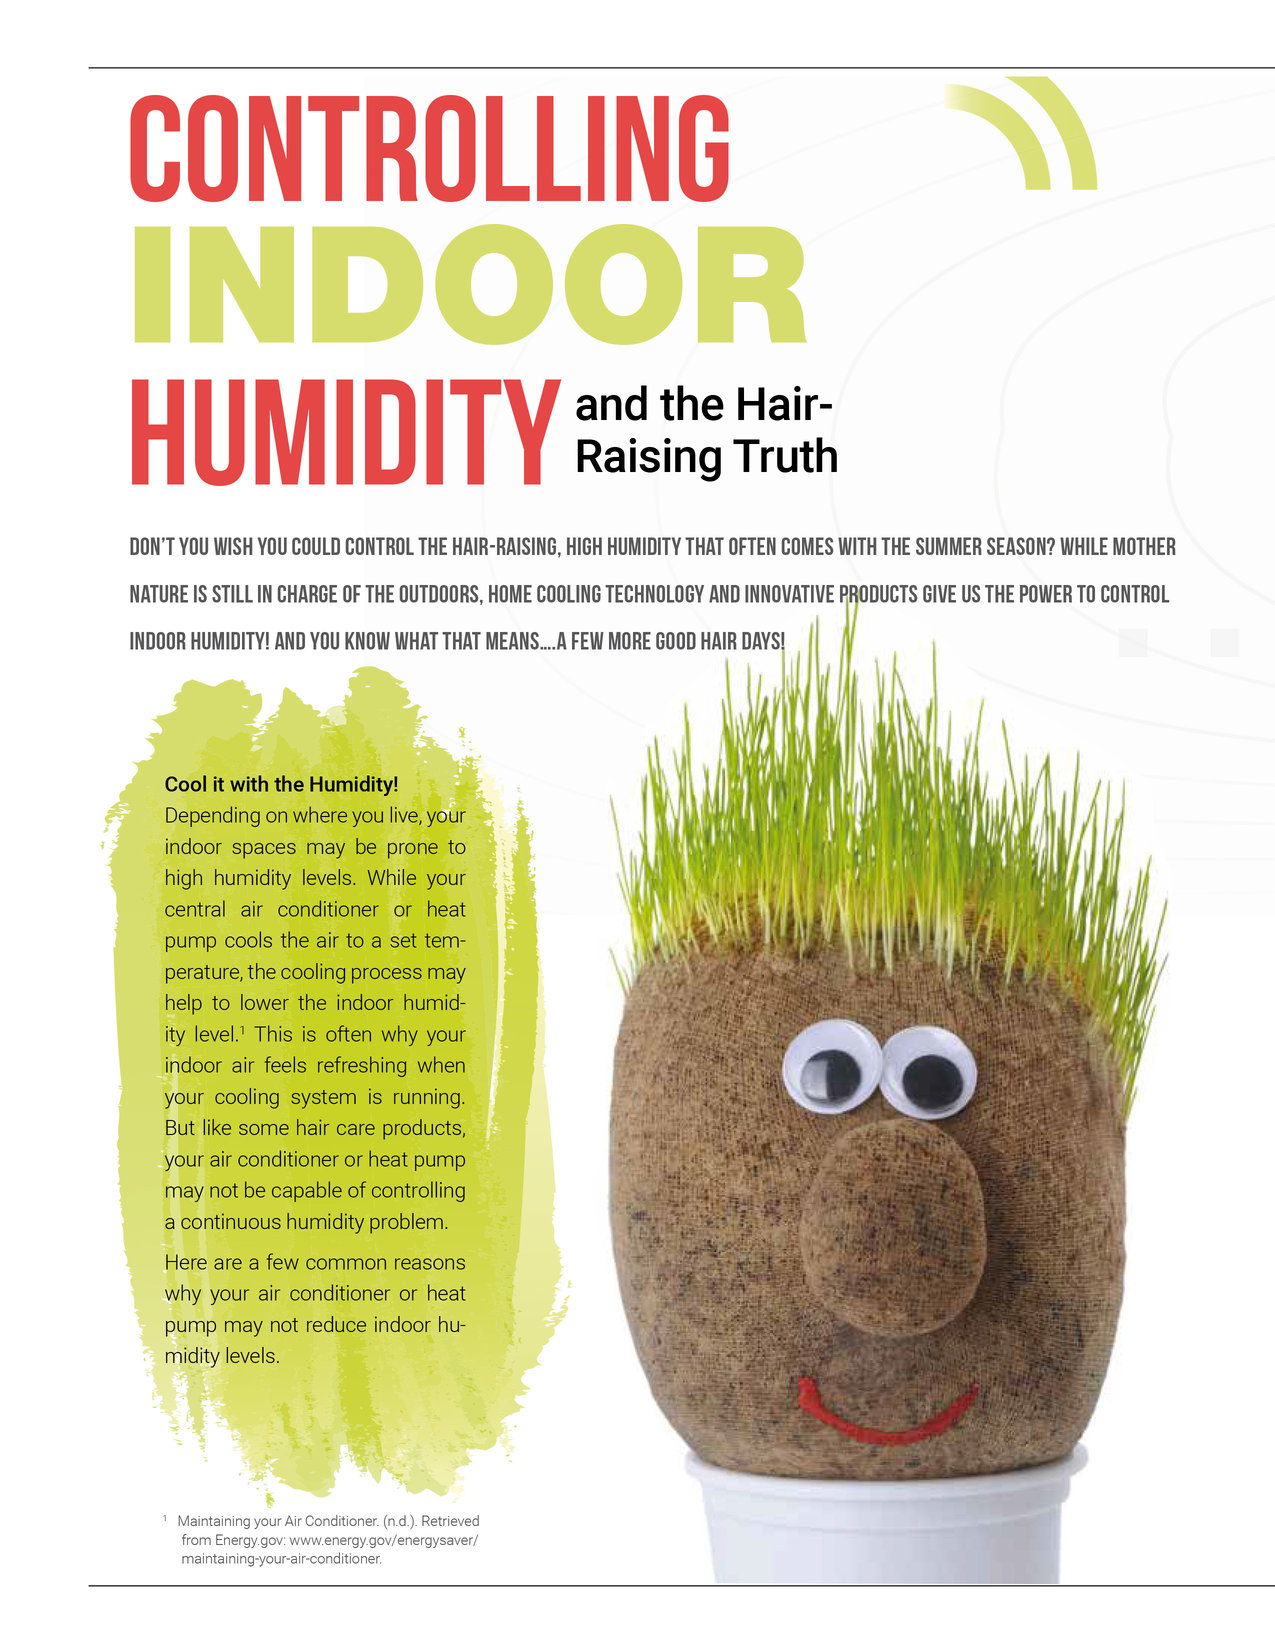 Controlling Indoor Humidity